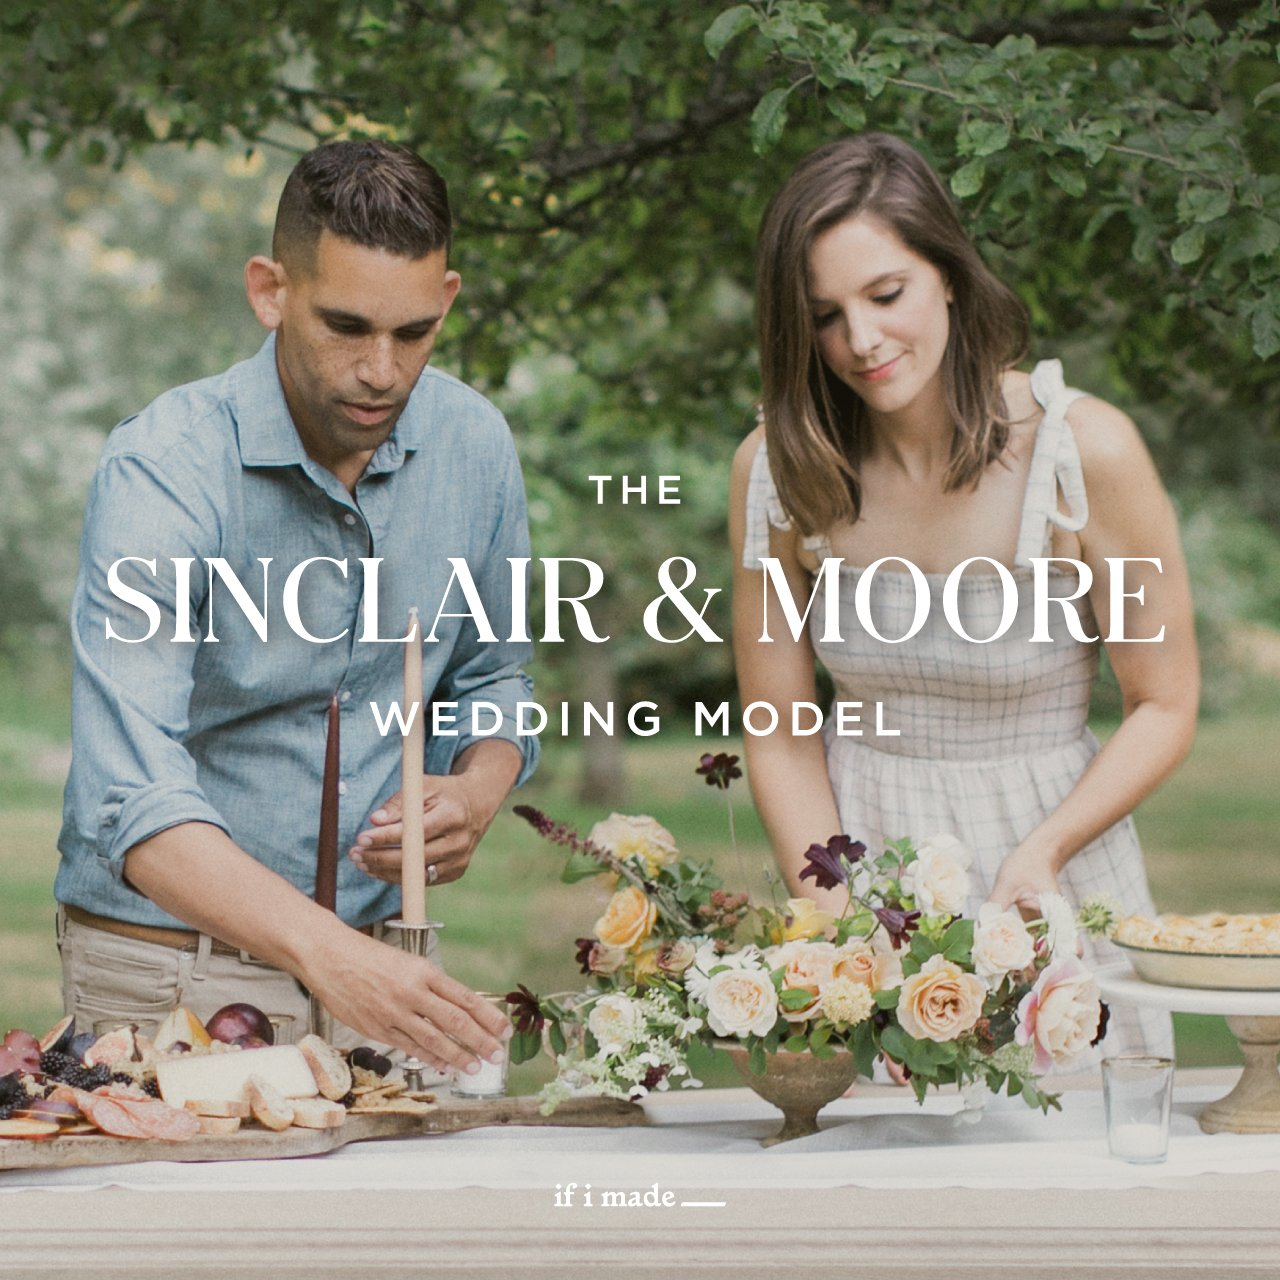 Sale Payment Plan: The Sinclair & Moore Wedding Model- 18 Monthly Payments of $99